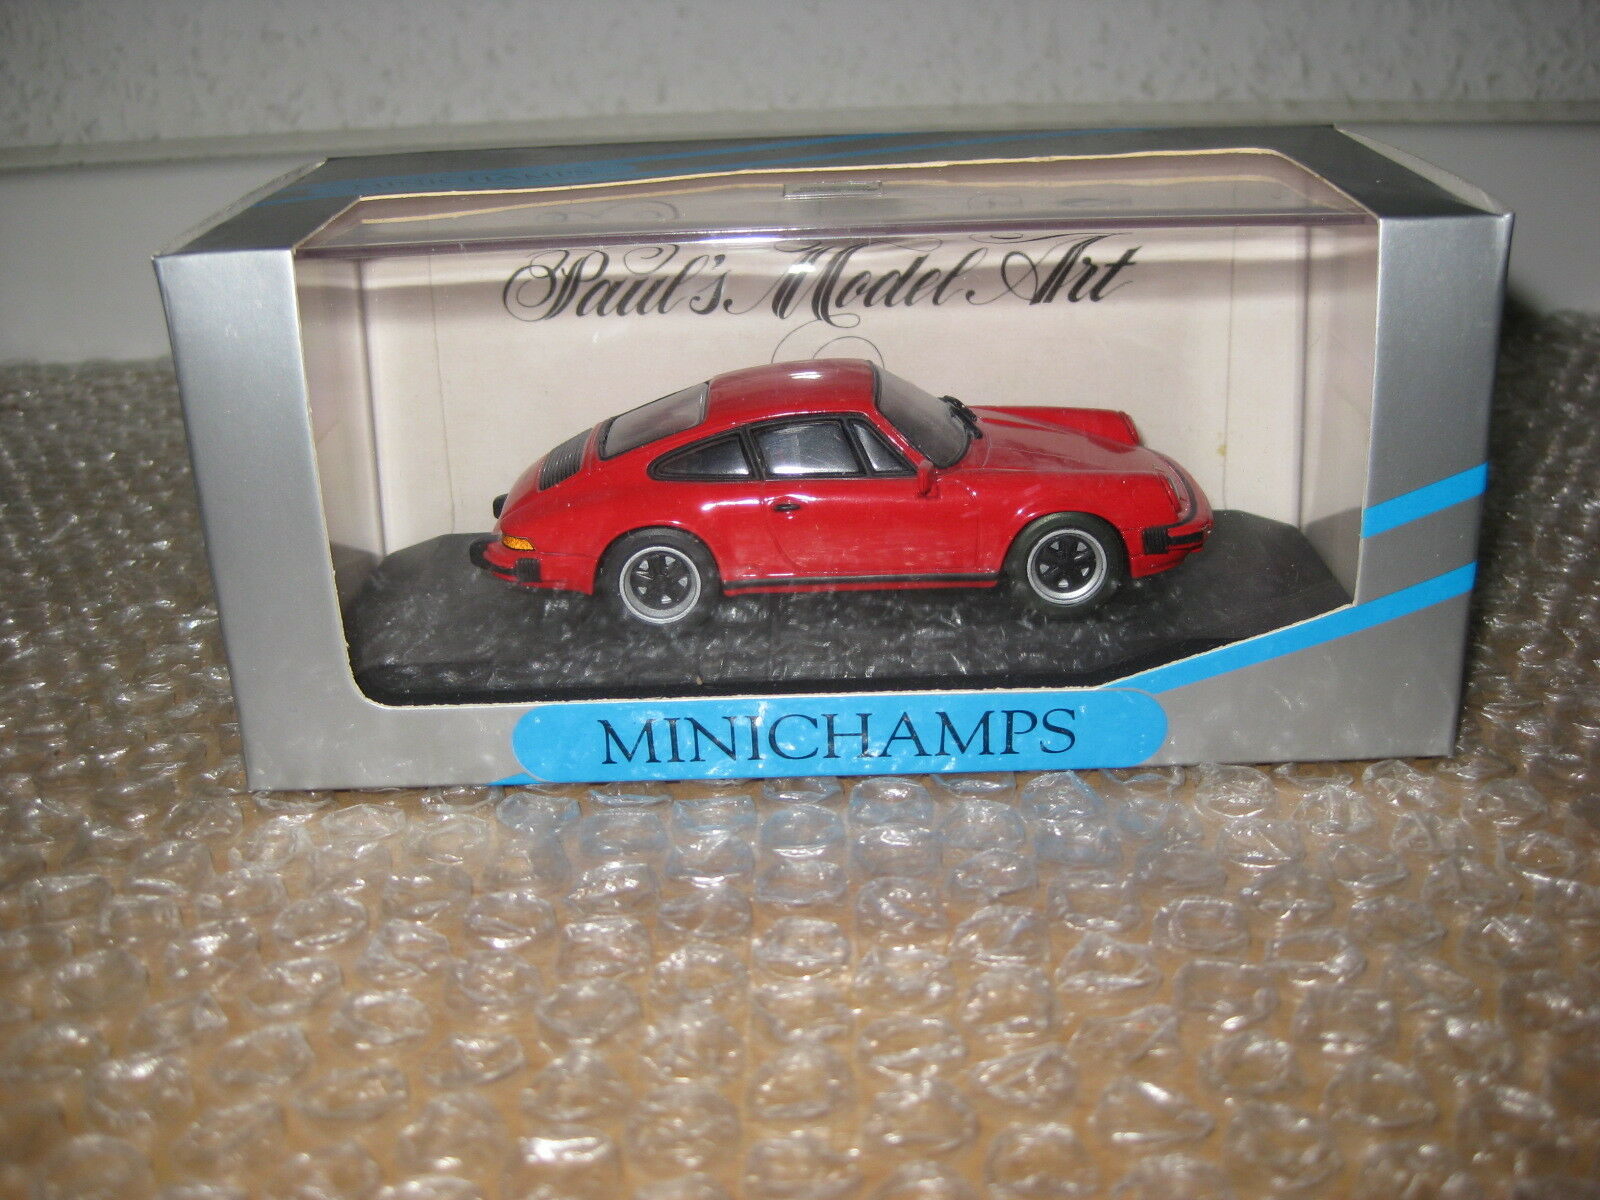 Minichamps 1 43 Porsche 911 Coupe 1978-1983 India rot No. 062020 Q1040